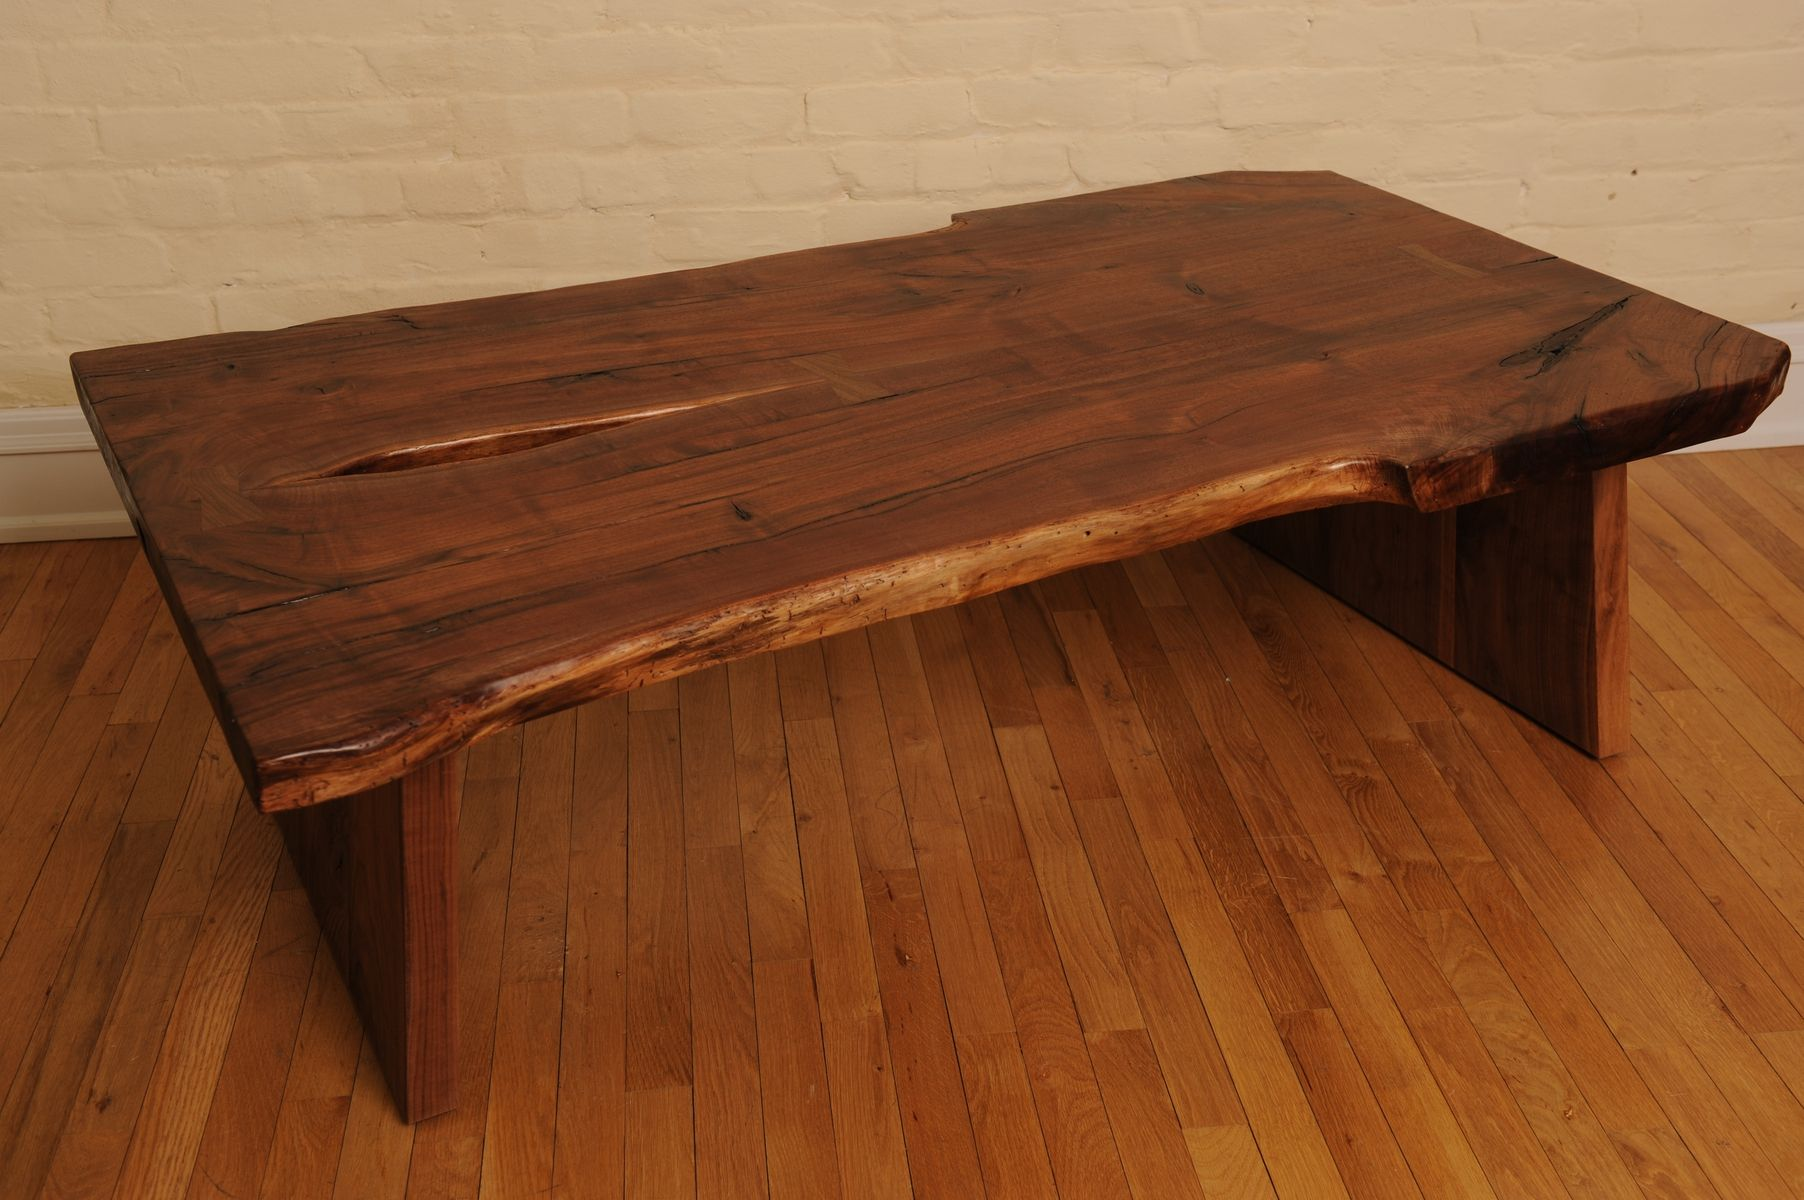 hand crafted nakashima styled coffee table by schmitt custom